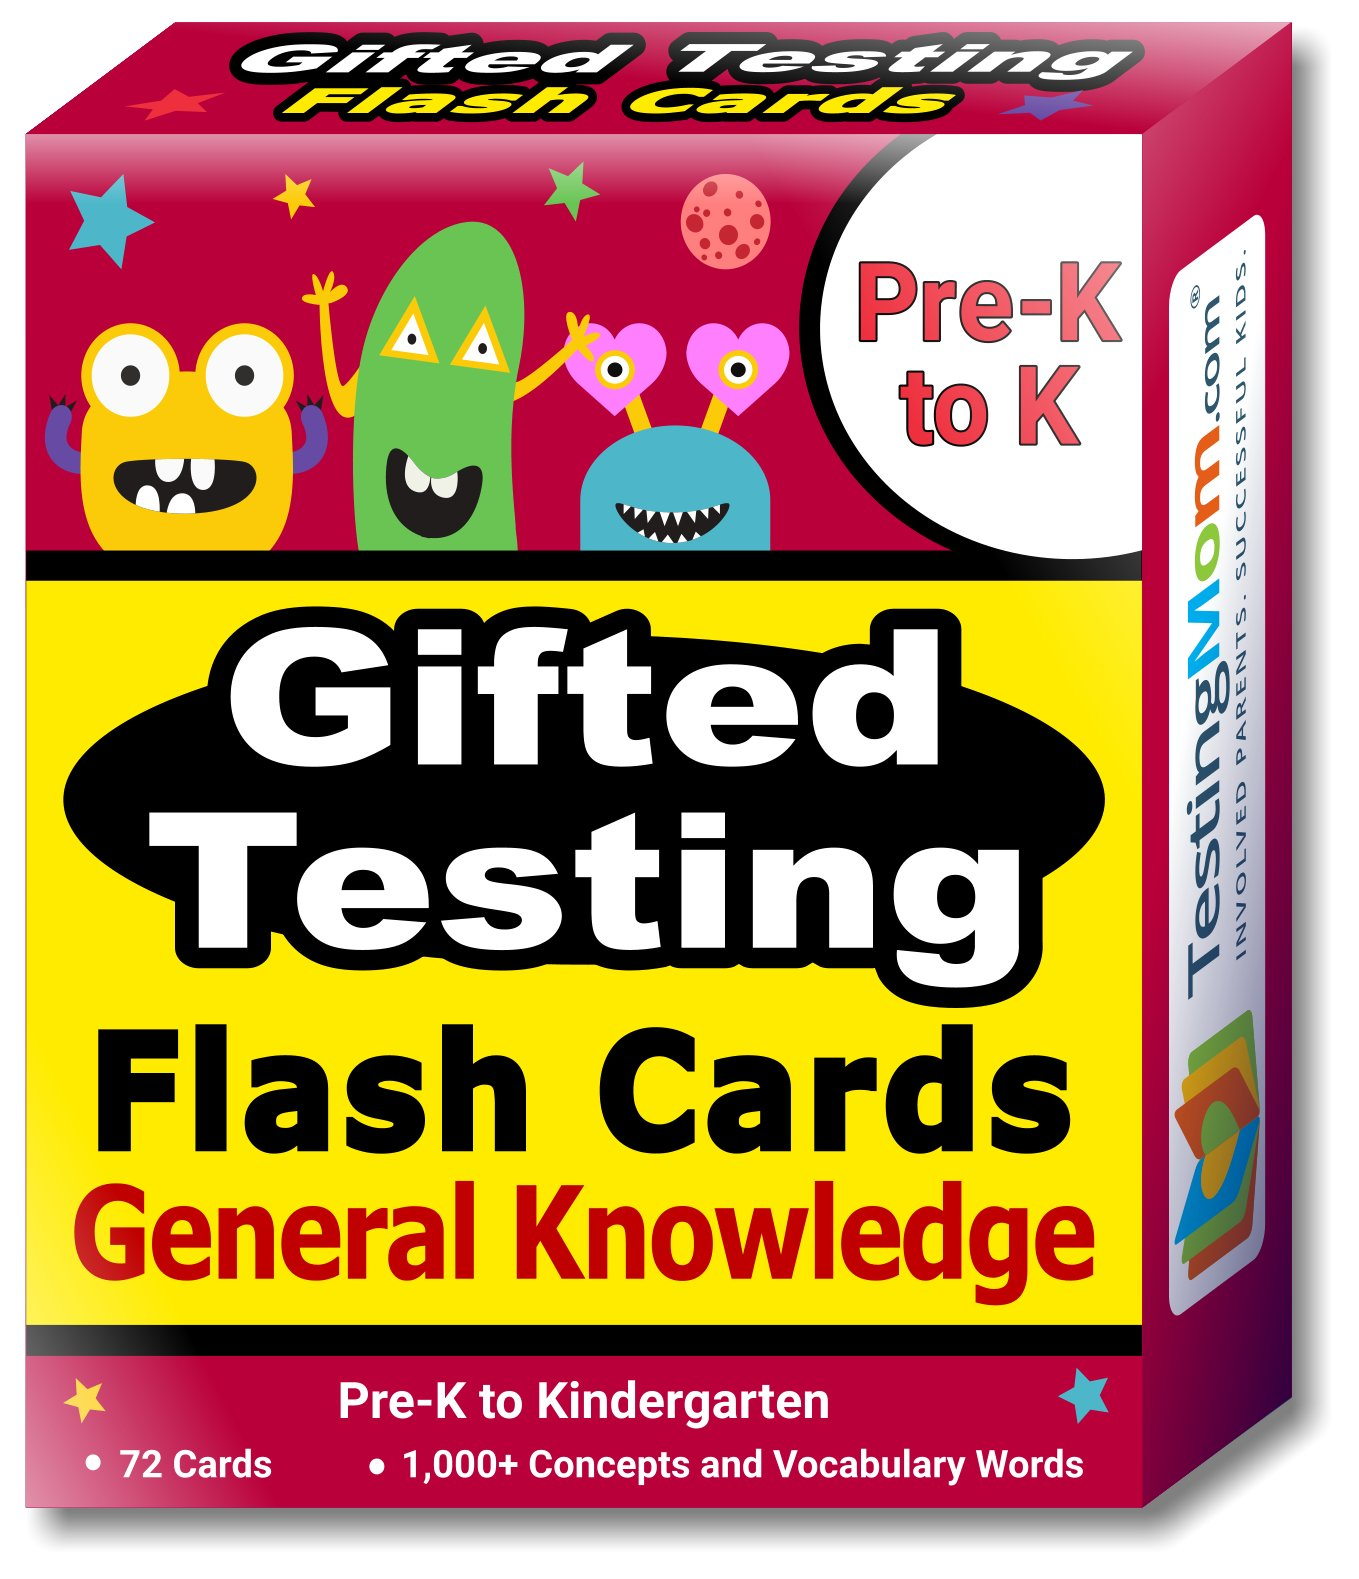 TestingMom.com Gifted Learning Flash Cards Bundle - Kindergarten-in-A-Box Set 2 - Verbal Concepts, General Knowledge, Spatial Concepts, Social Emotional Learning (Set 2) by TestingMom.com (Image #4)